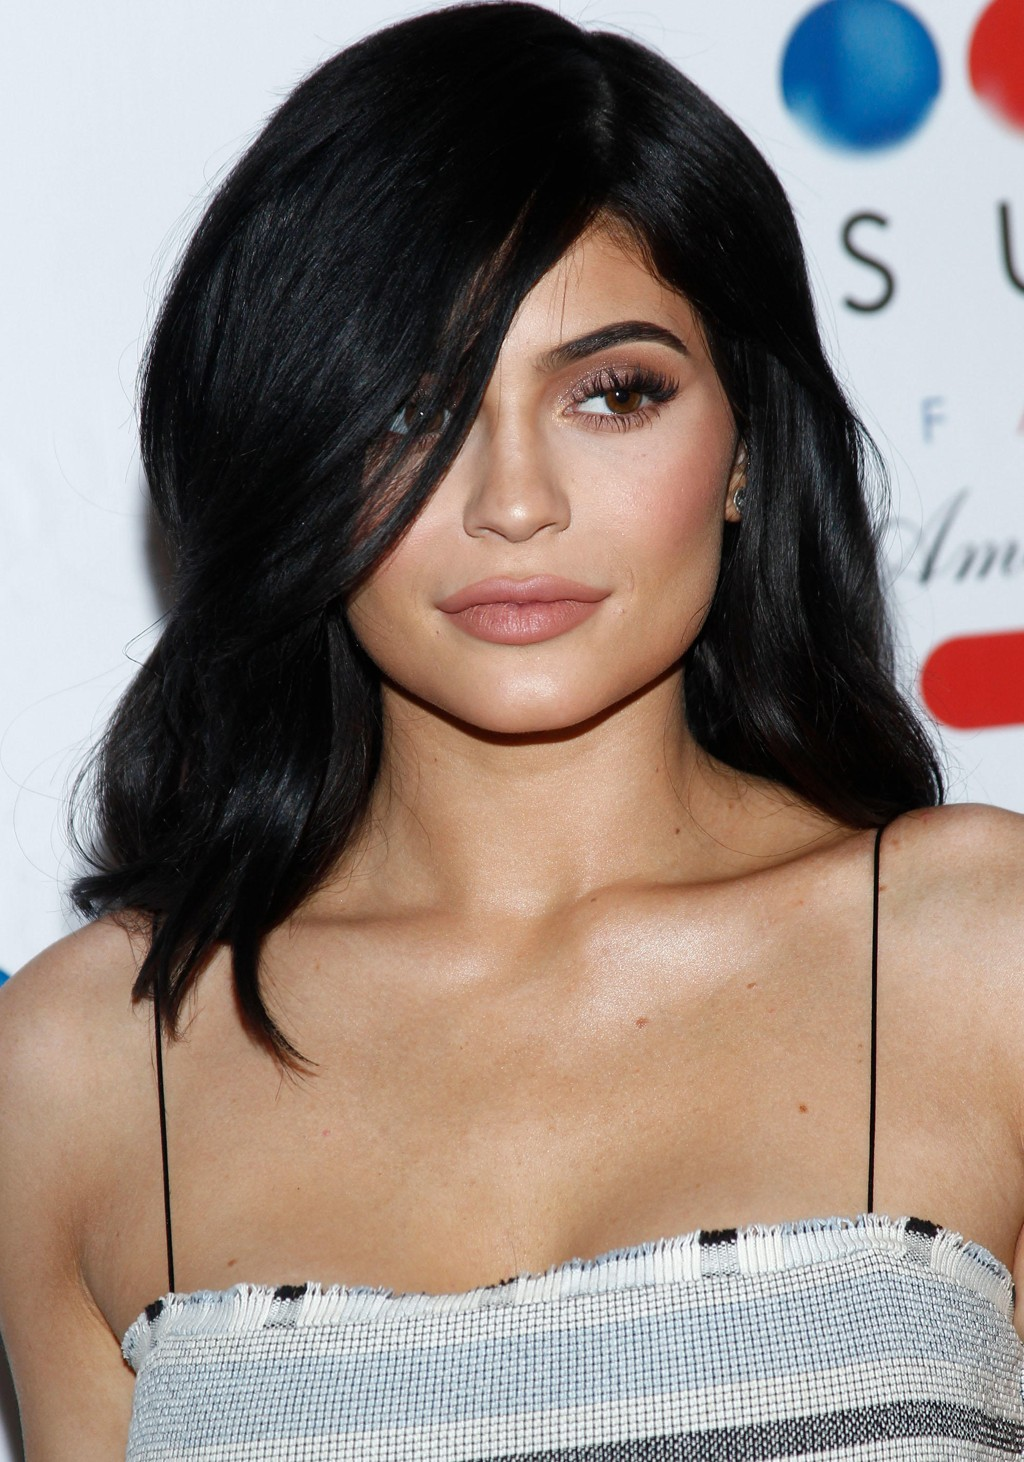 Kylie Jenner under Sugar Factory at Fashion Show i Las Vegas.